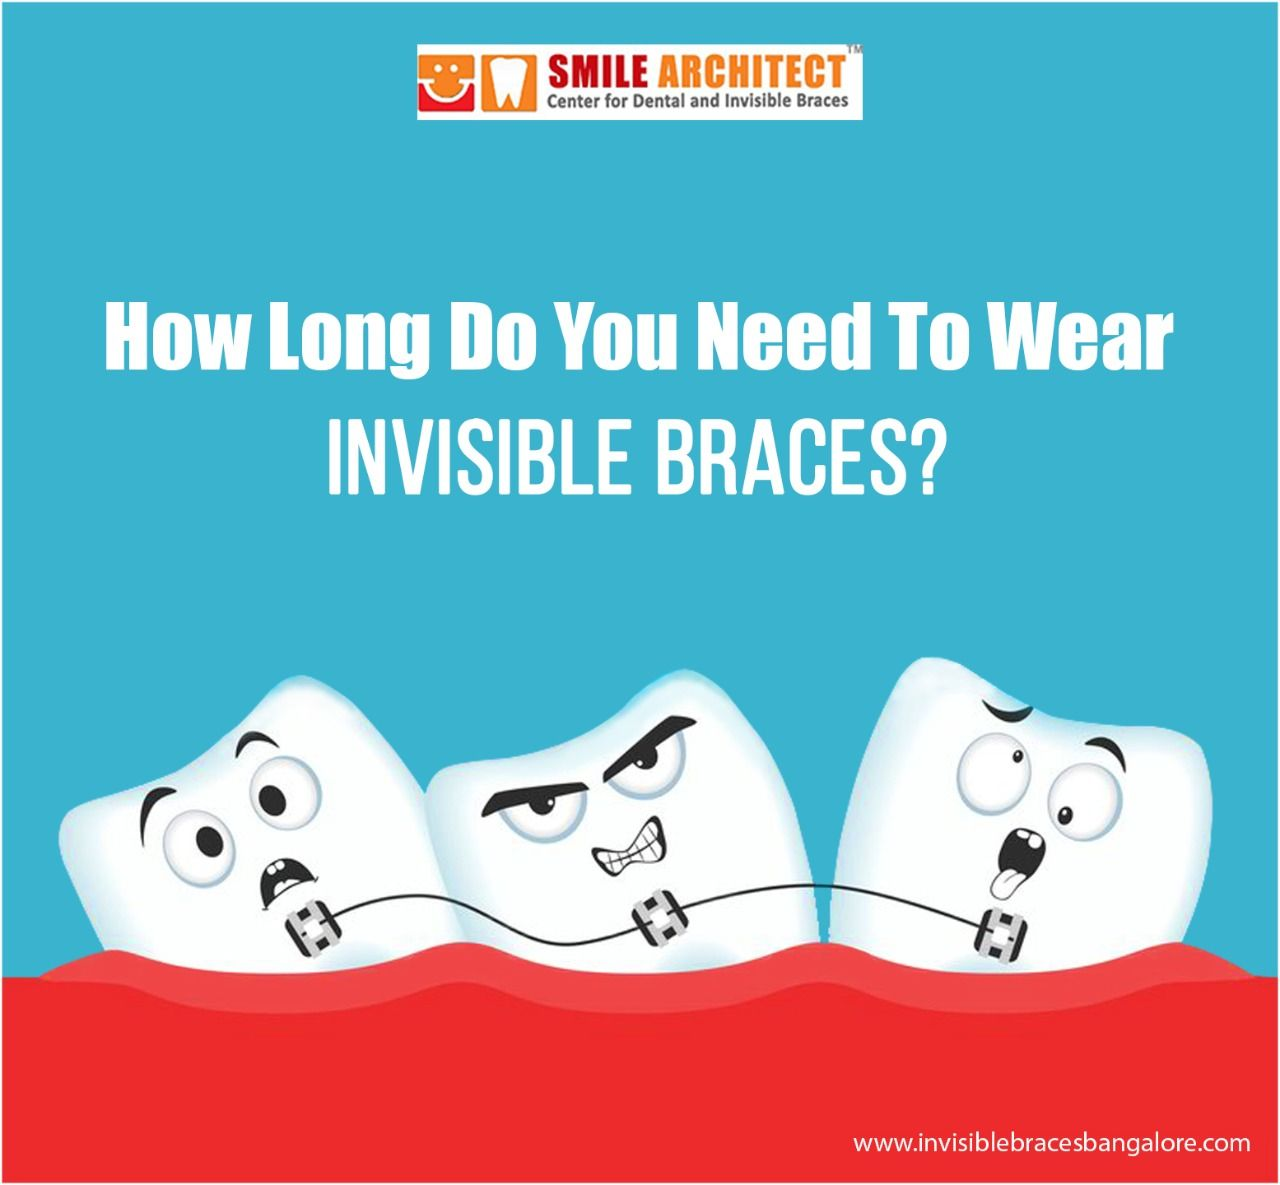 Invisible bracesHow long do you need to wear it? The